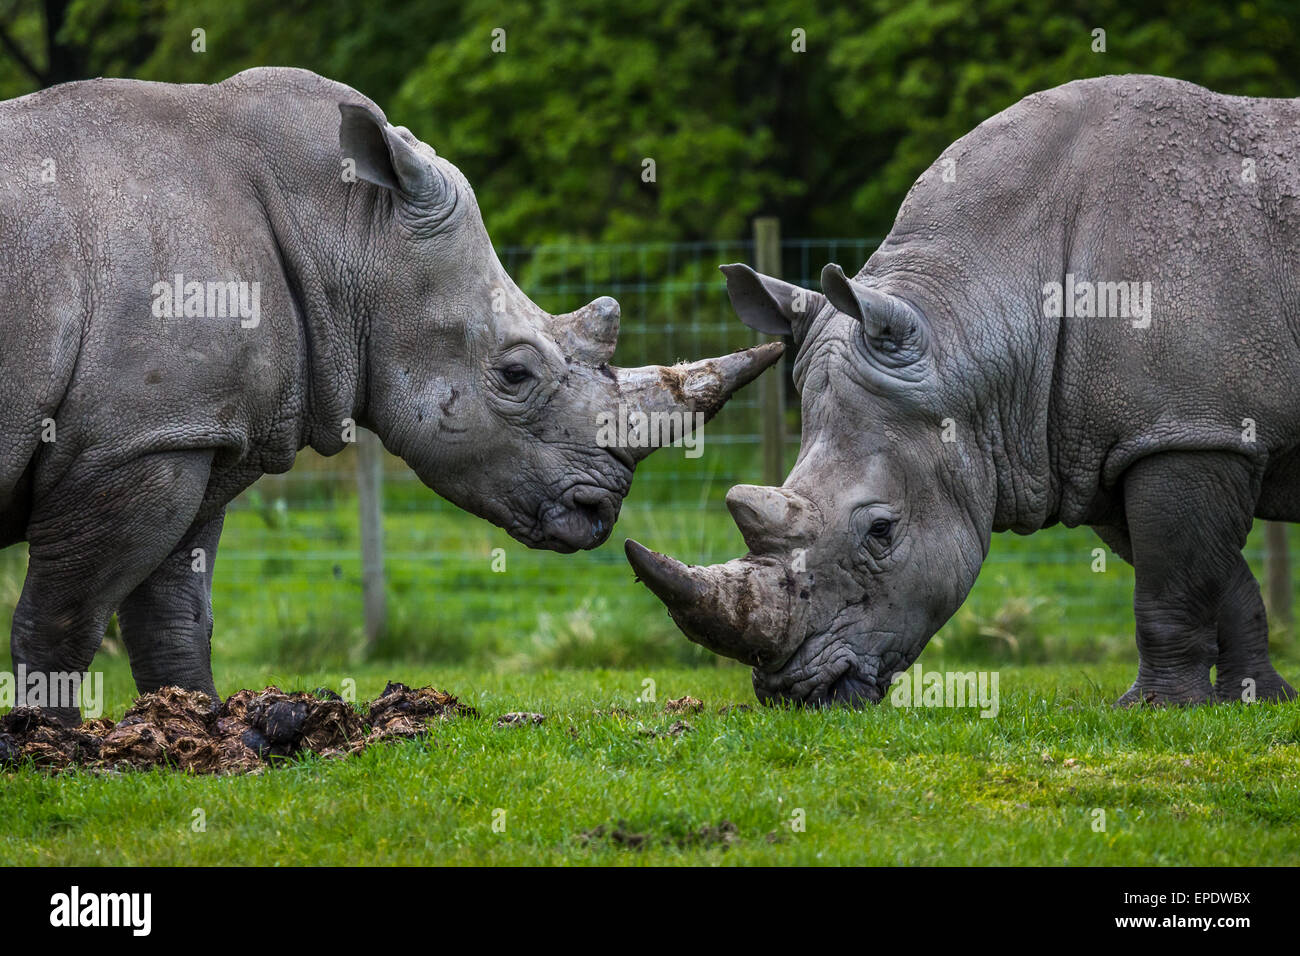 Two white rhino's together near Liverpool. - Stock Image